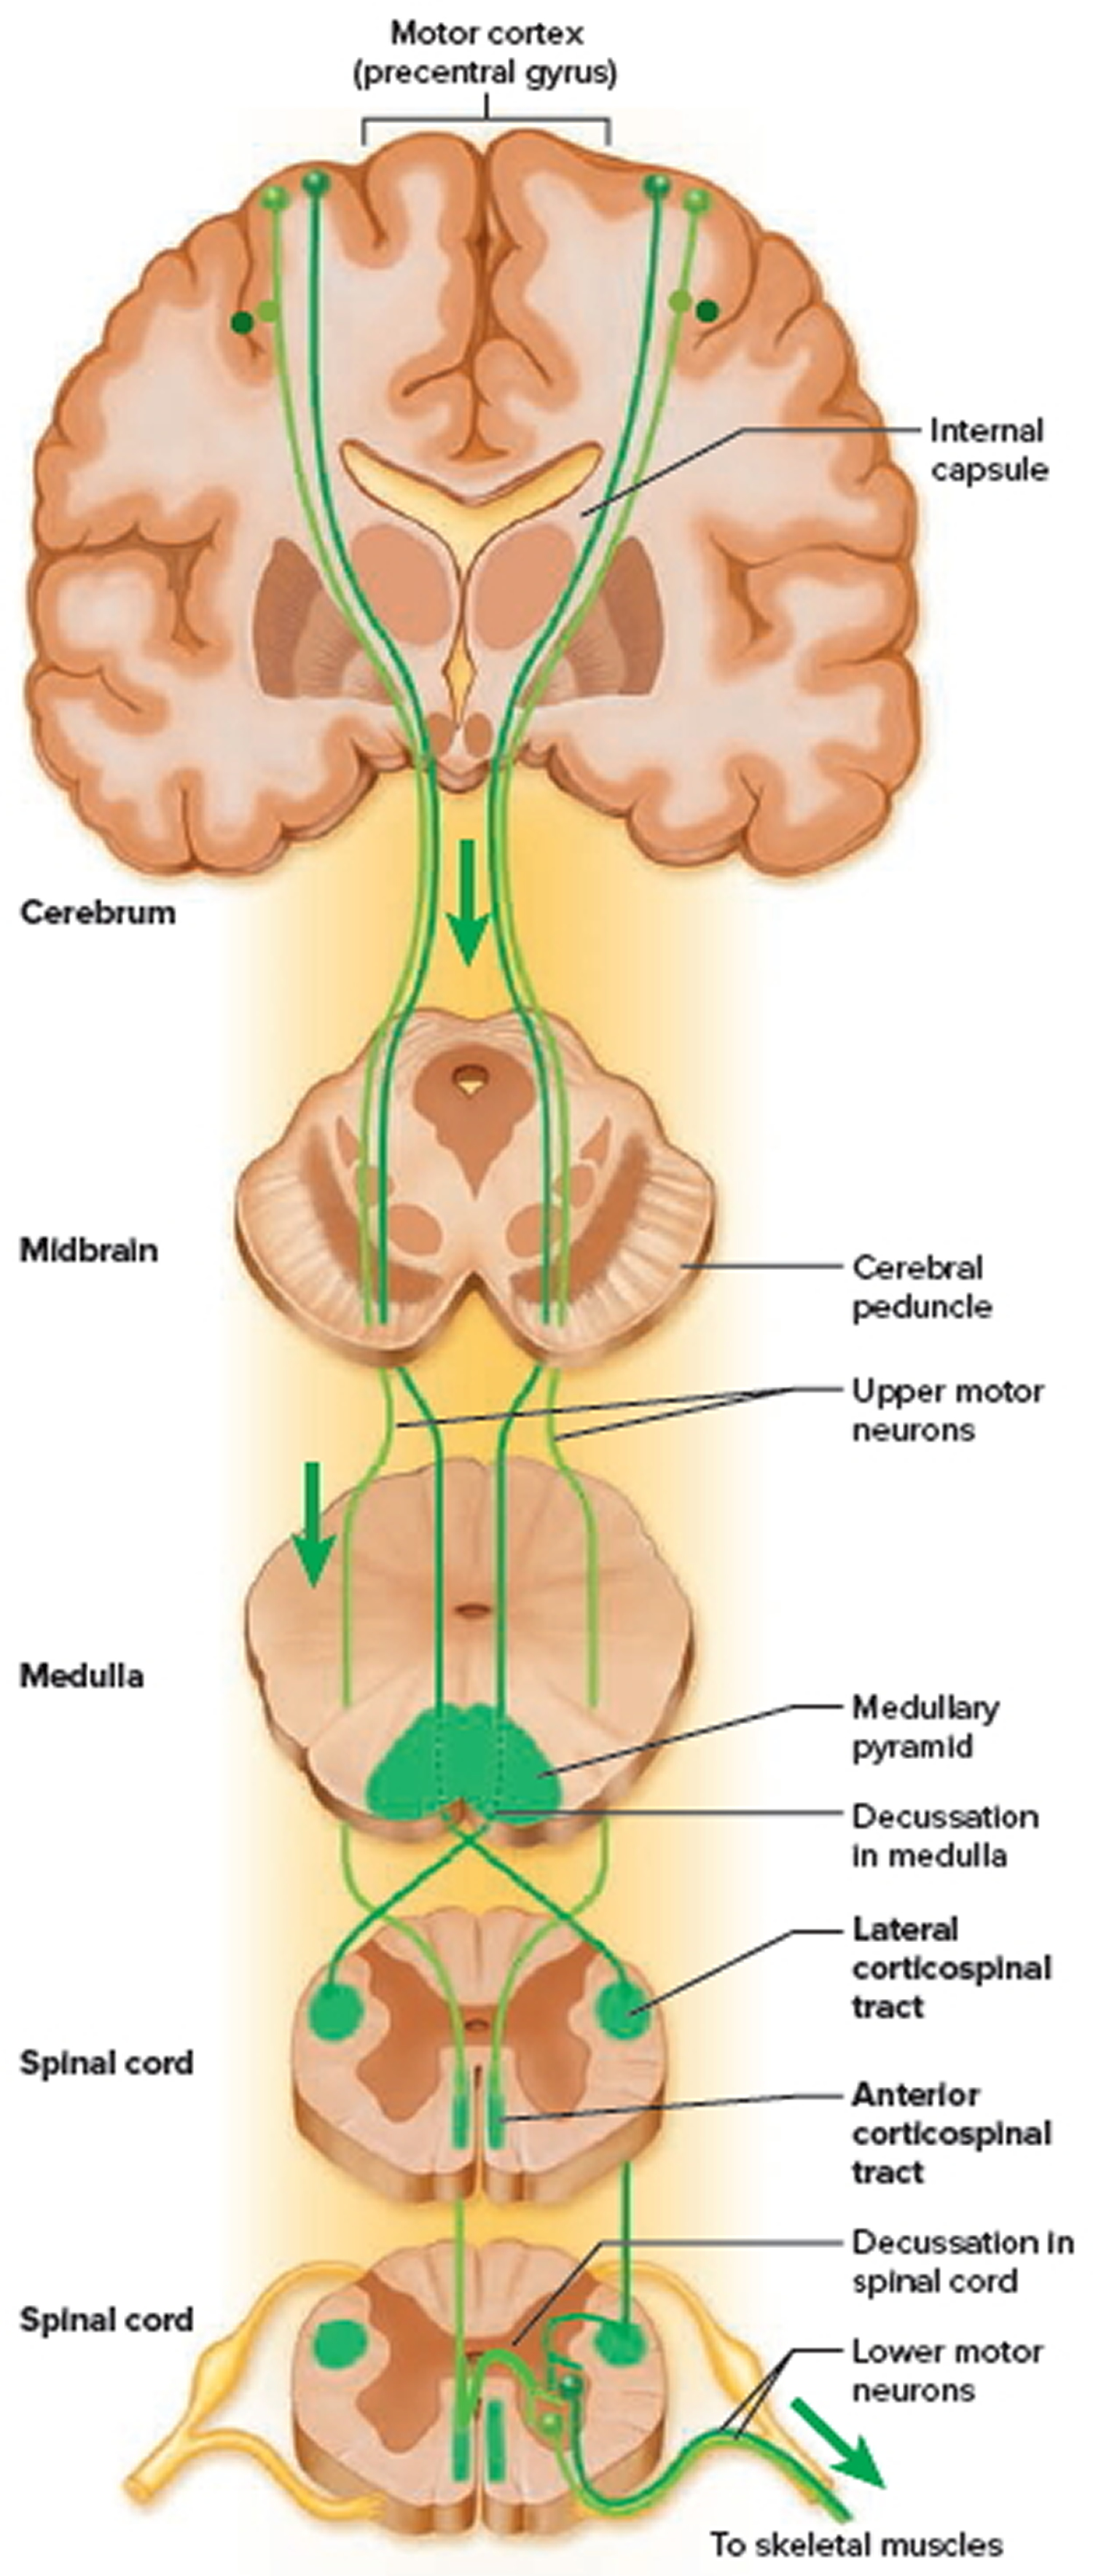 spinal cord descending pathways from the brain